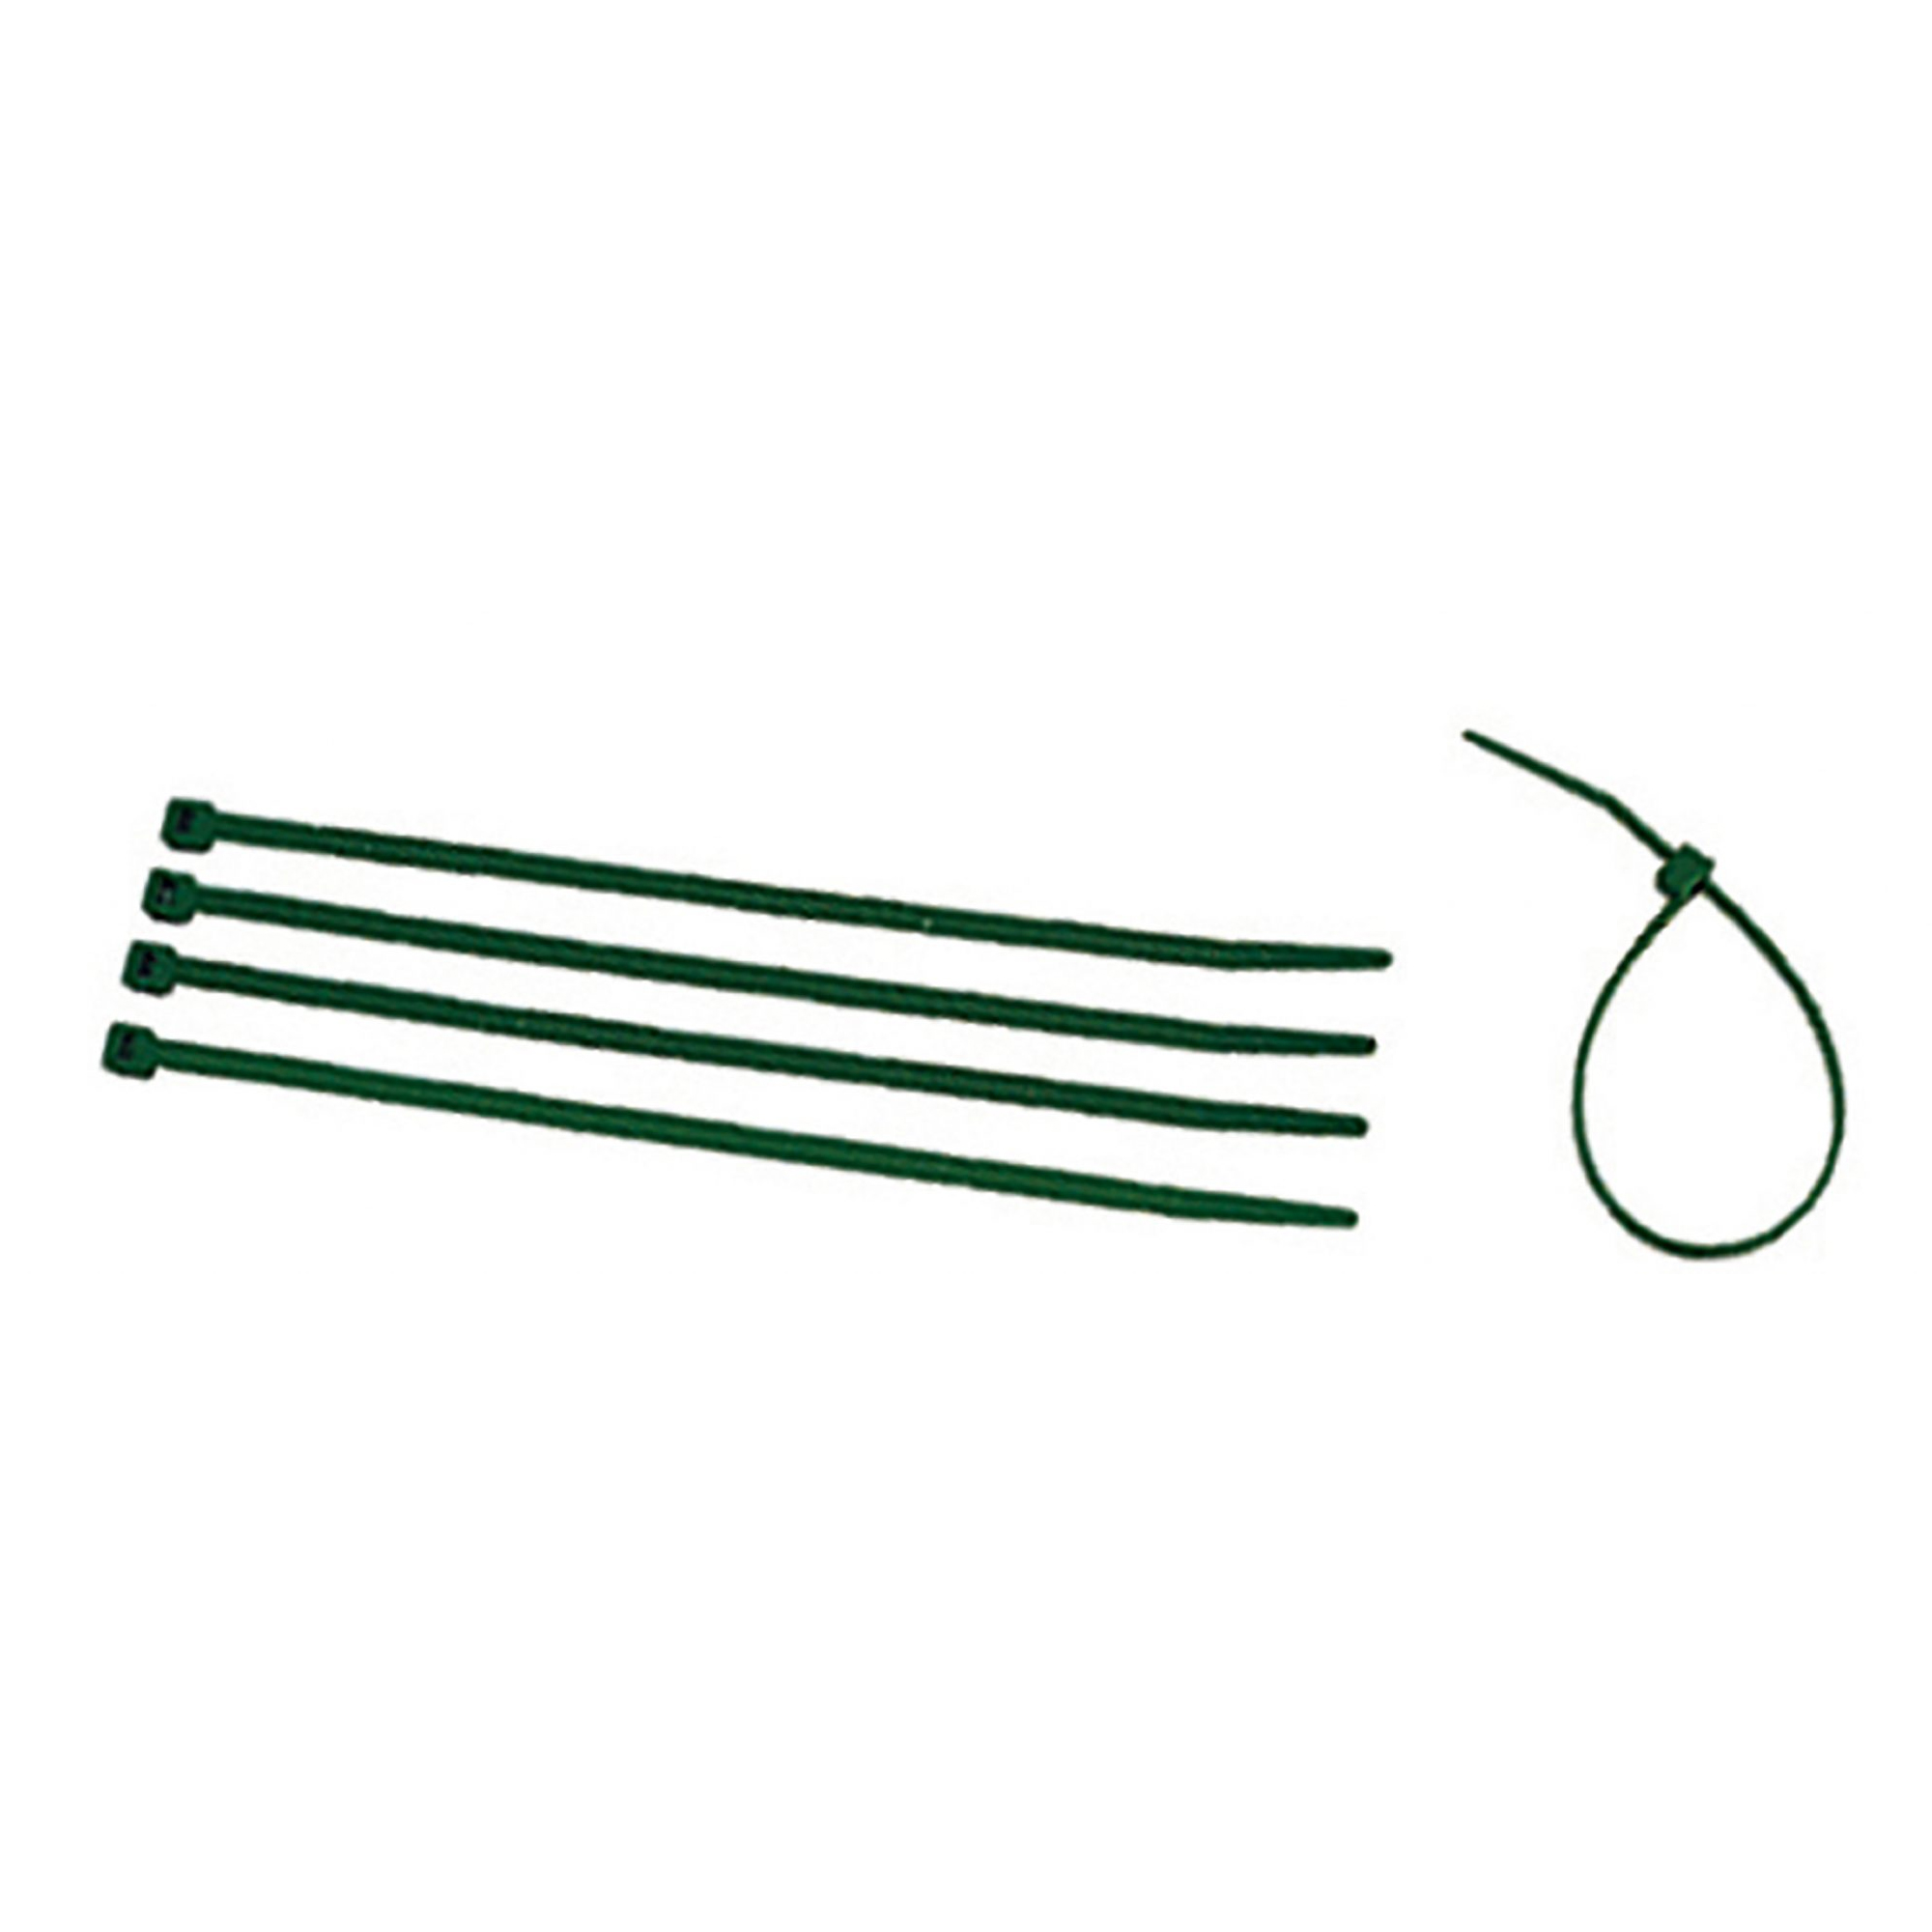 Green-8-Inch-Cable-Tie